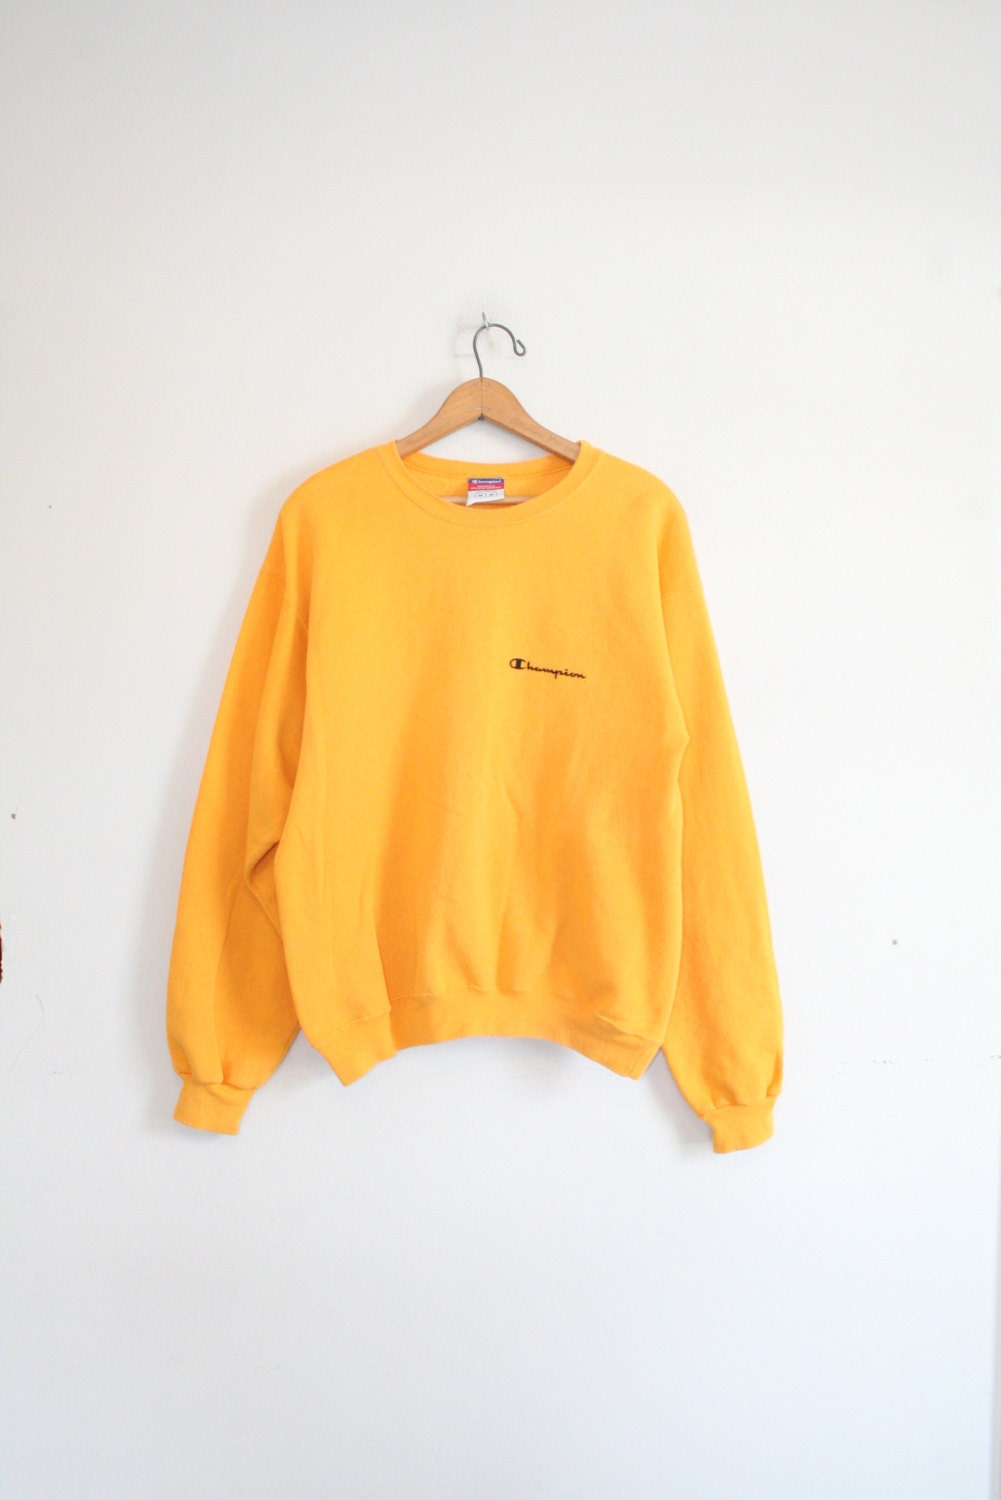 Populaire sweat champion femme jaune,champion supreme sweat shirt pull over  KY02